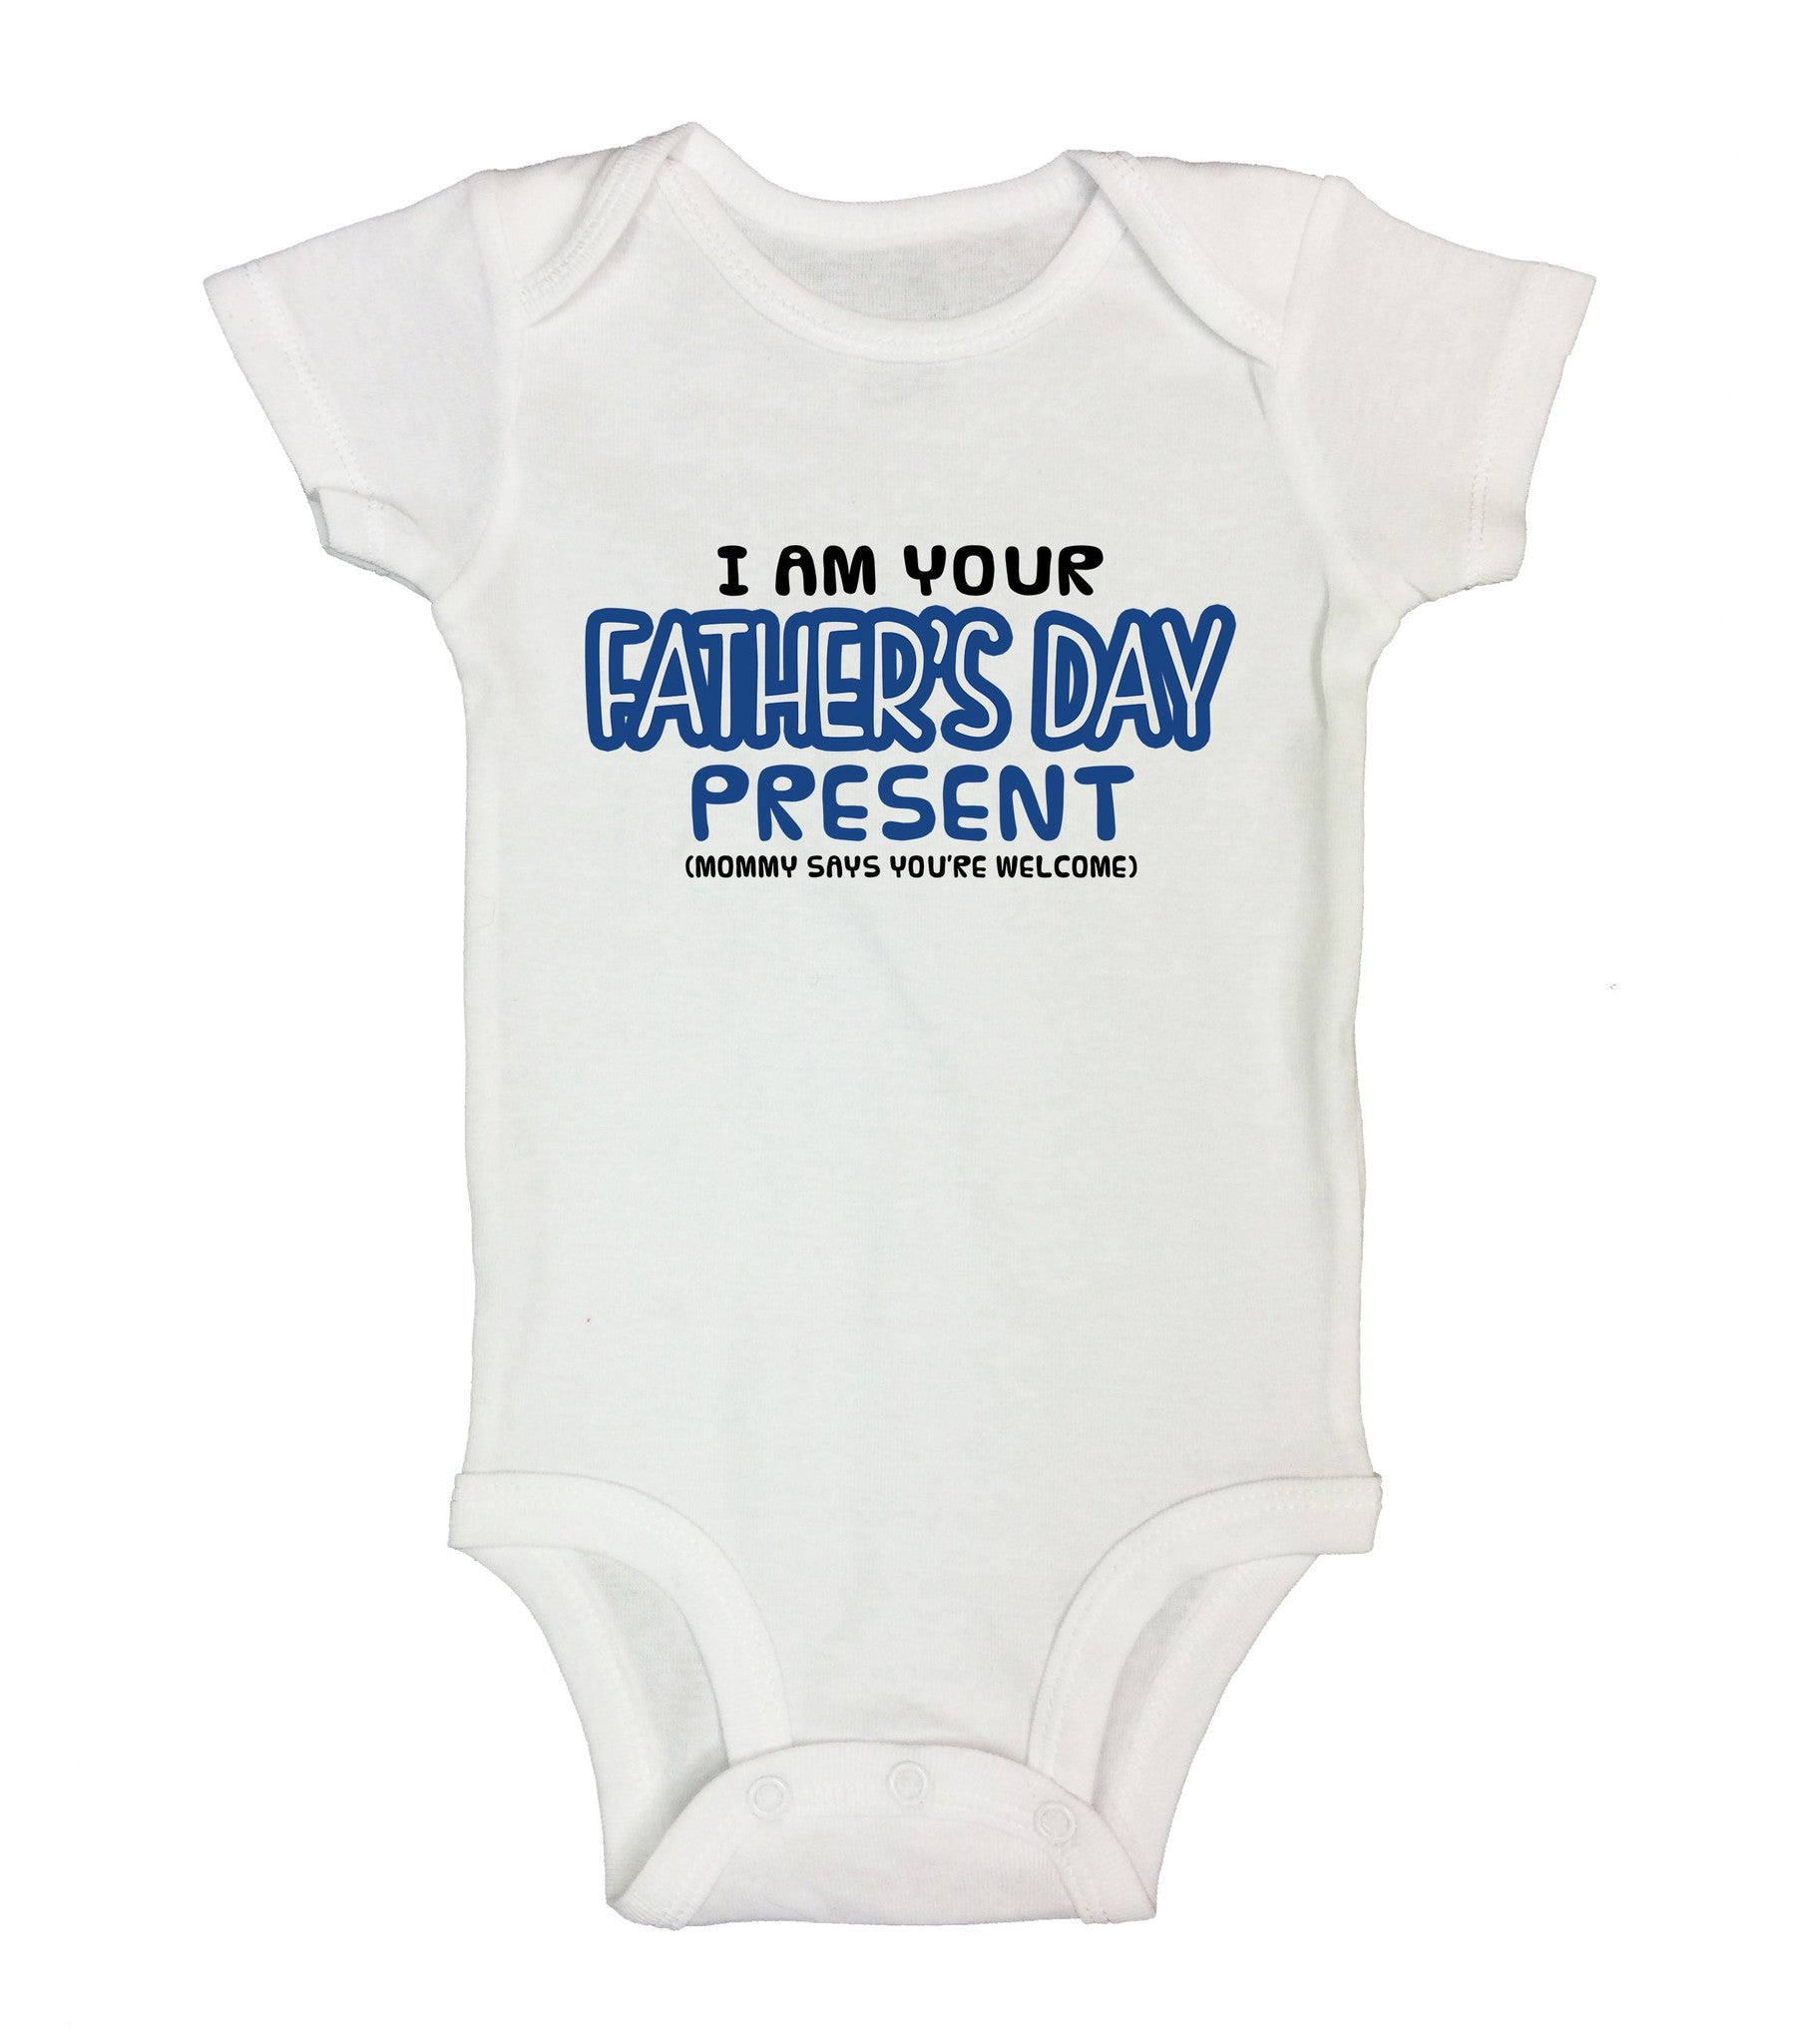 I Am Your Father's Day Present (Mommy Says You're Welcome) Funny Kids Onesie - B34 - Funny Shirts Tank Tops Burnouts and Triblends  - 1